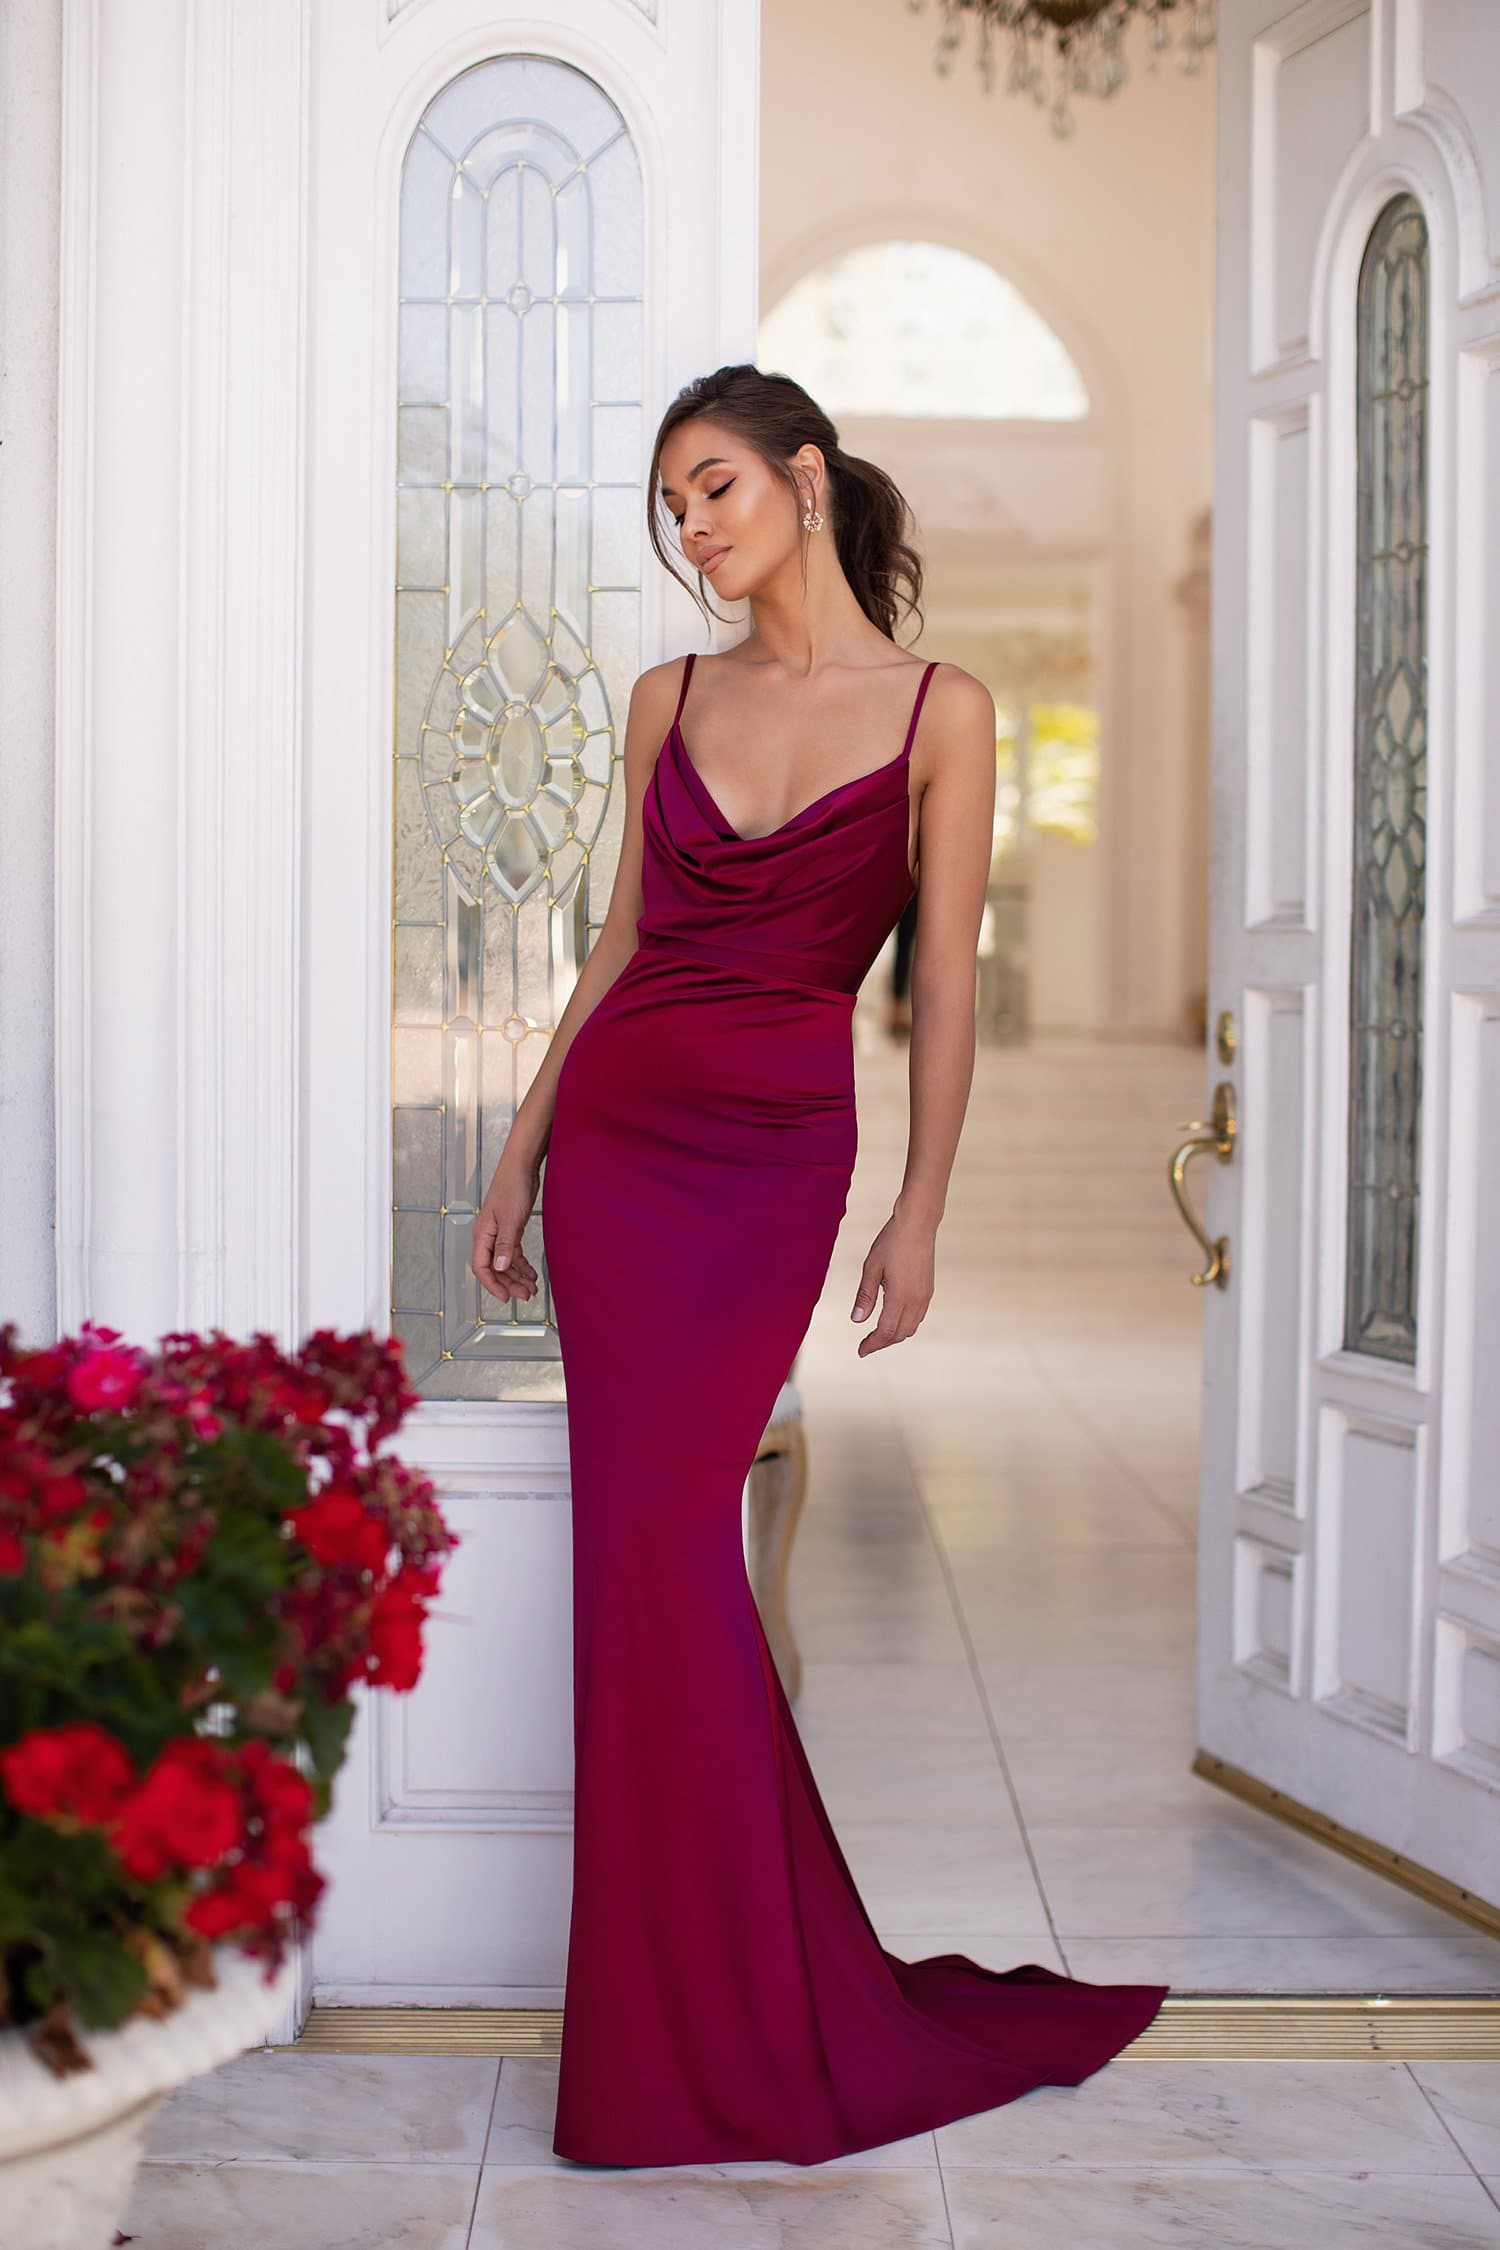 Vamira - Burgundy Satin Gown with Cowl Neck & Thin Straps